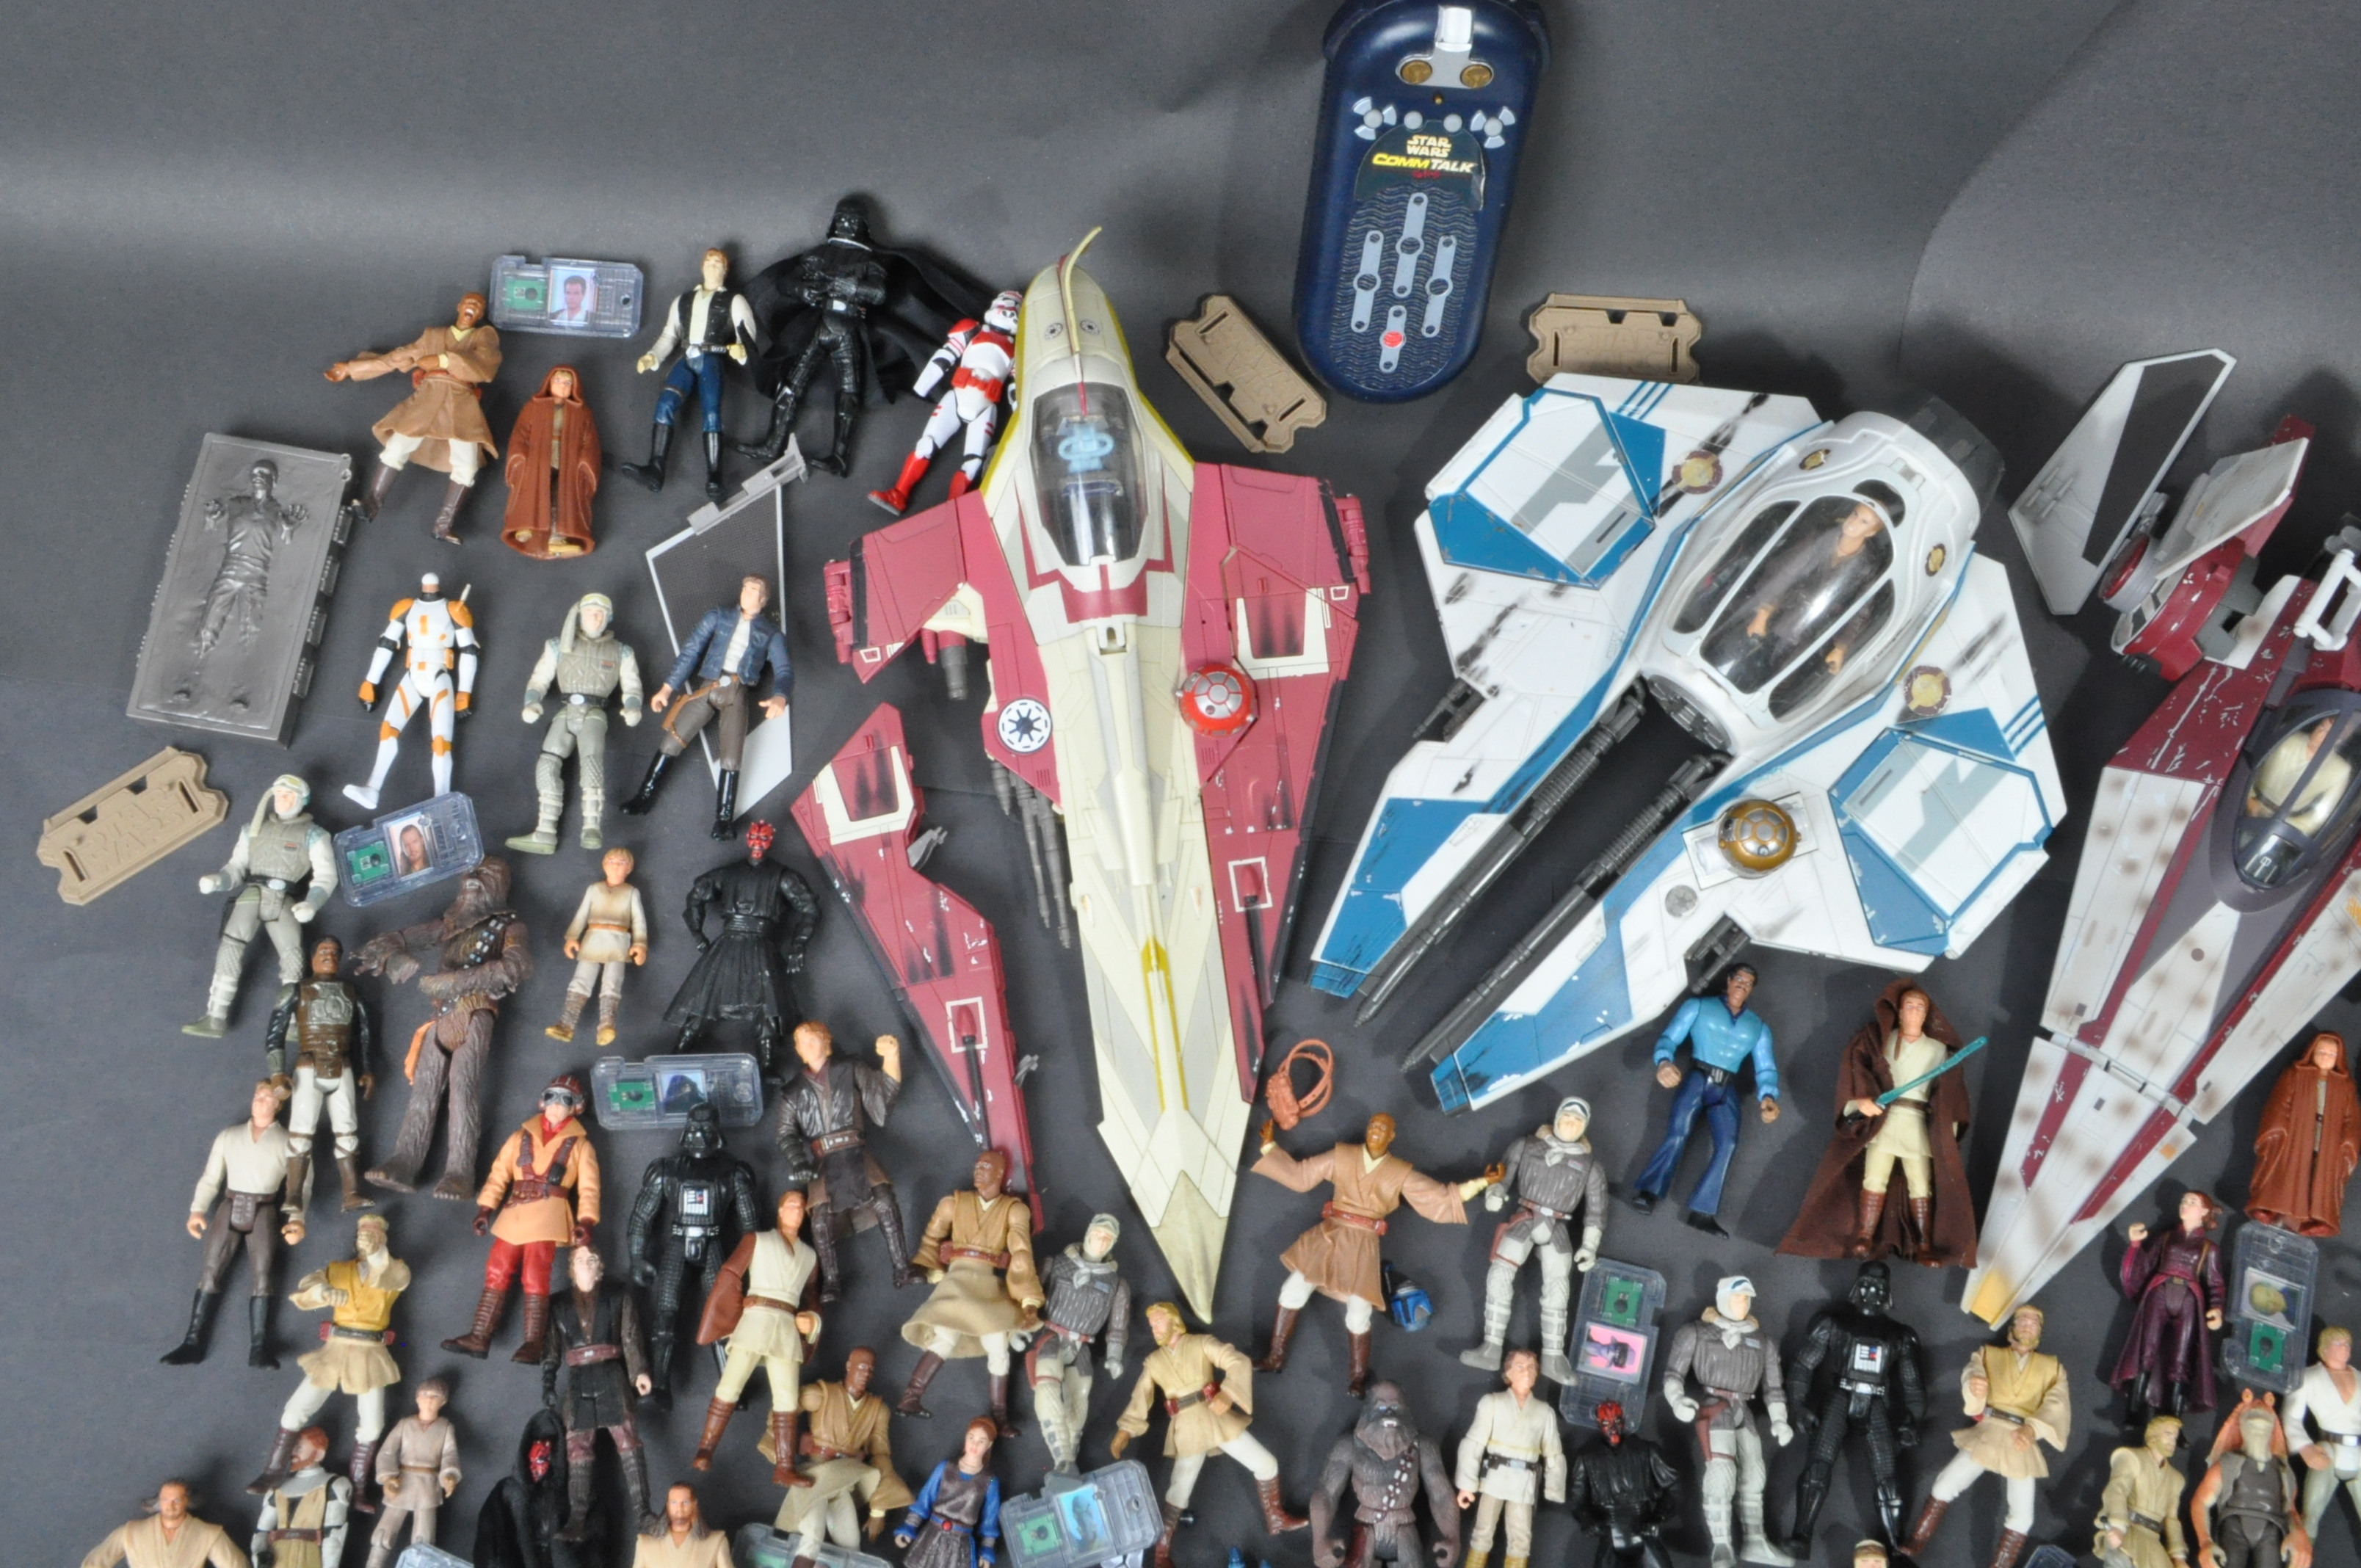 STAR WARS - LARGE COLLECTION KENNER / HASBRO CLONE WARS & OTHER FIGURES - Image 4 of 10